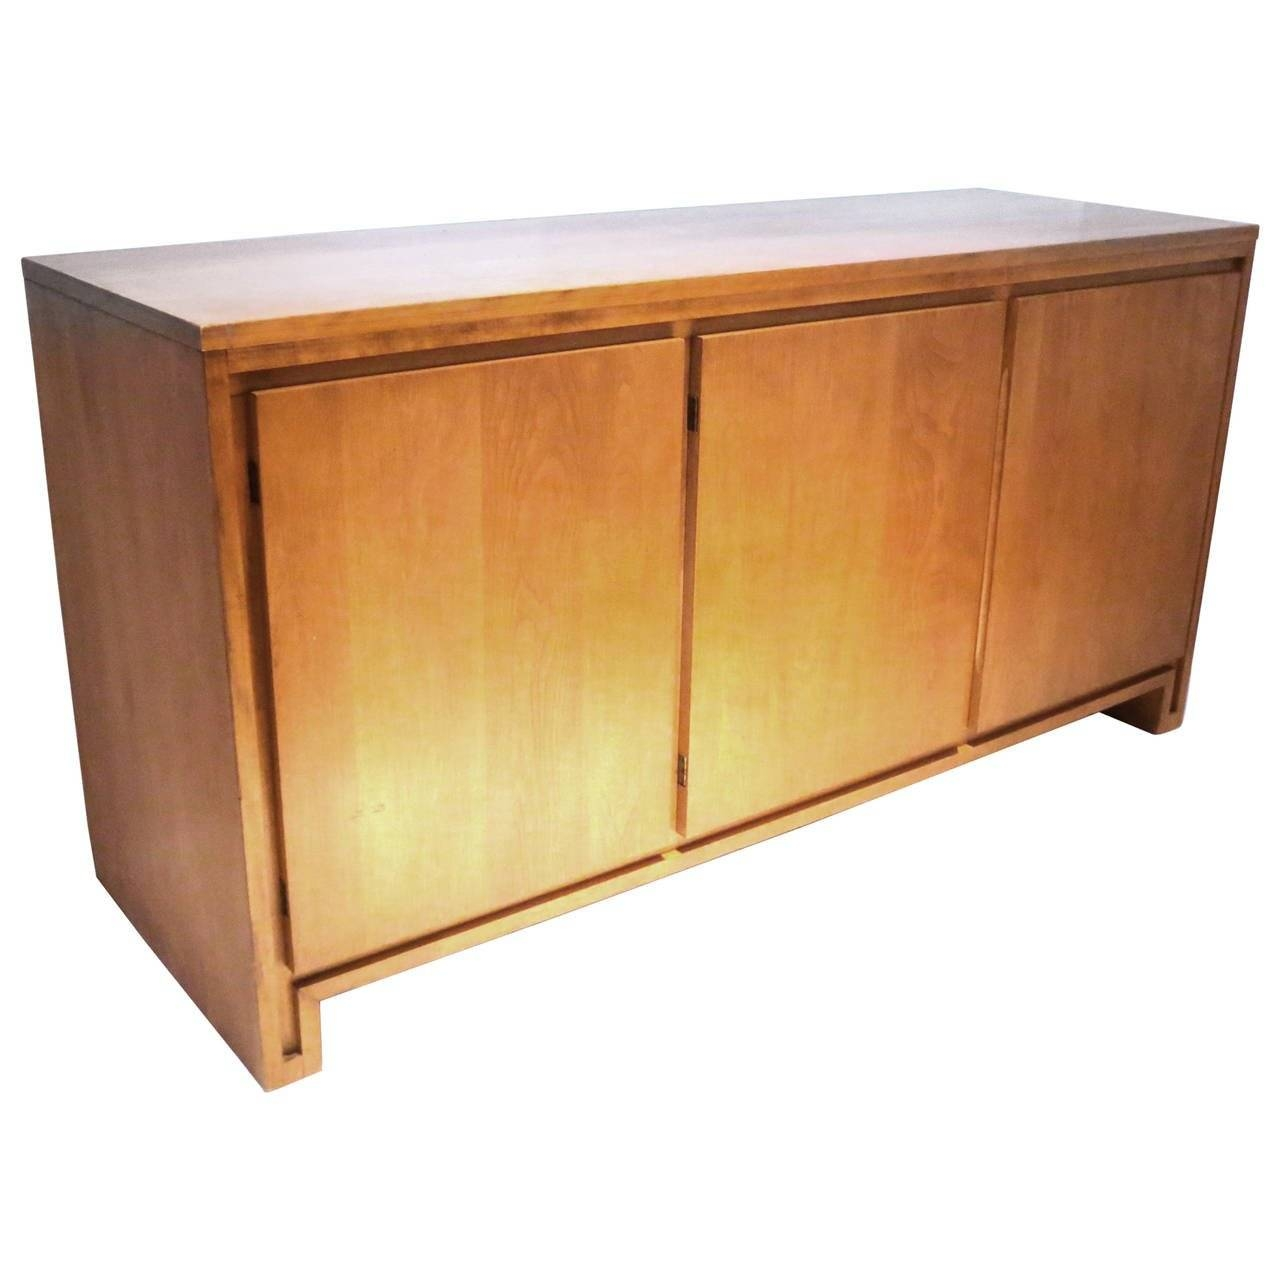 Inspiration about 1950S Solid Maple Sideboard Or Credenza Designrussel Wright Inside Most Recent Maple Sideboards (#13 of 15)